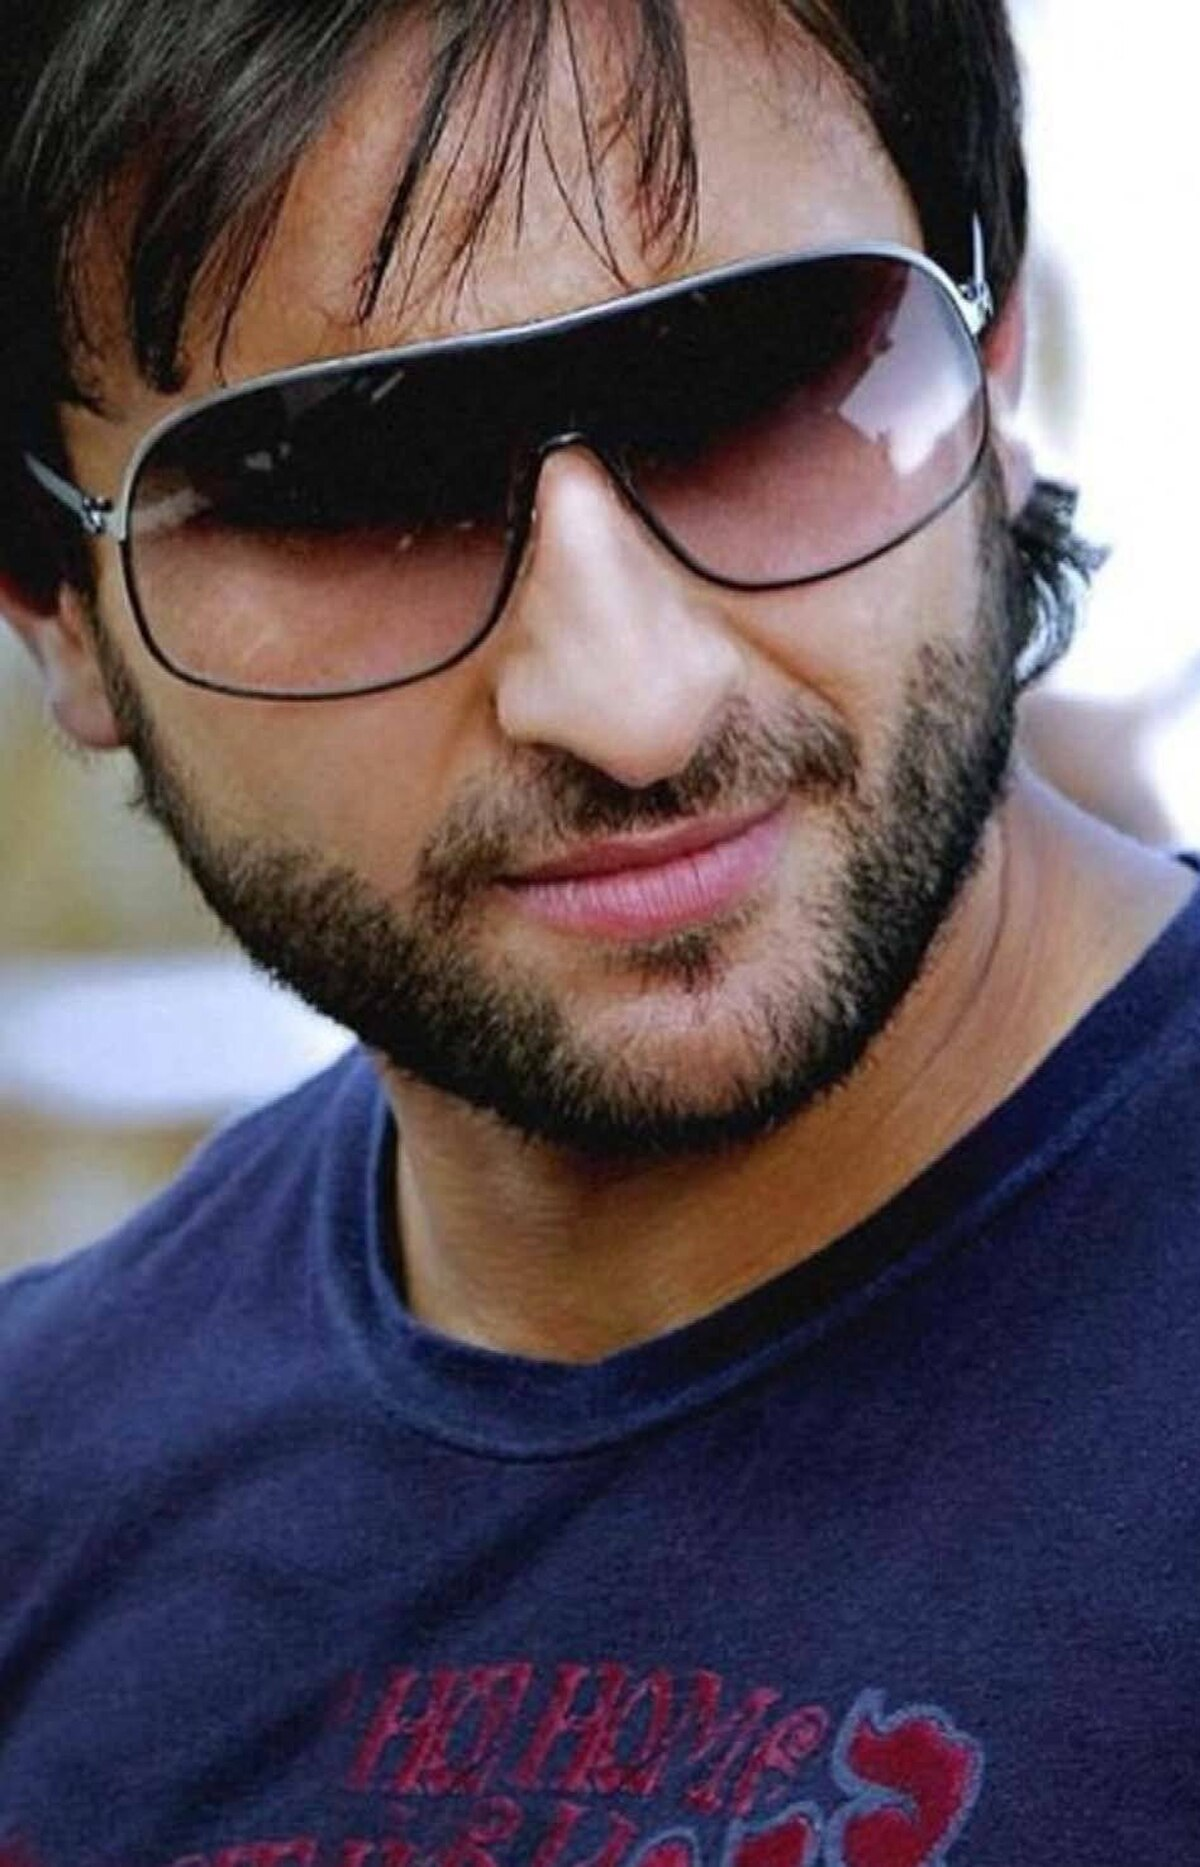 Saif Ali Khan With a mischievous grin and a striking resemblance to his mother, 1960s icon Sharmila Tagore, Khanmade his mark on the Bollywood scene in the early 1990s with his roles in Main Khiladi Tu Anari and Yeh Dillagi. However, after the release of those, Khan's acting career went into a lull until he burst back onto the scene in 2001 with his outstanding performance in Dil Chahta Ha. From then his films achieved both critical and commercial success such as 2009's Love Aaj Kal which appealed to India's globally aware younger generation.